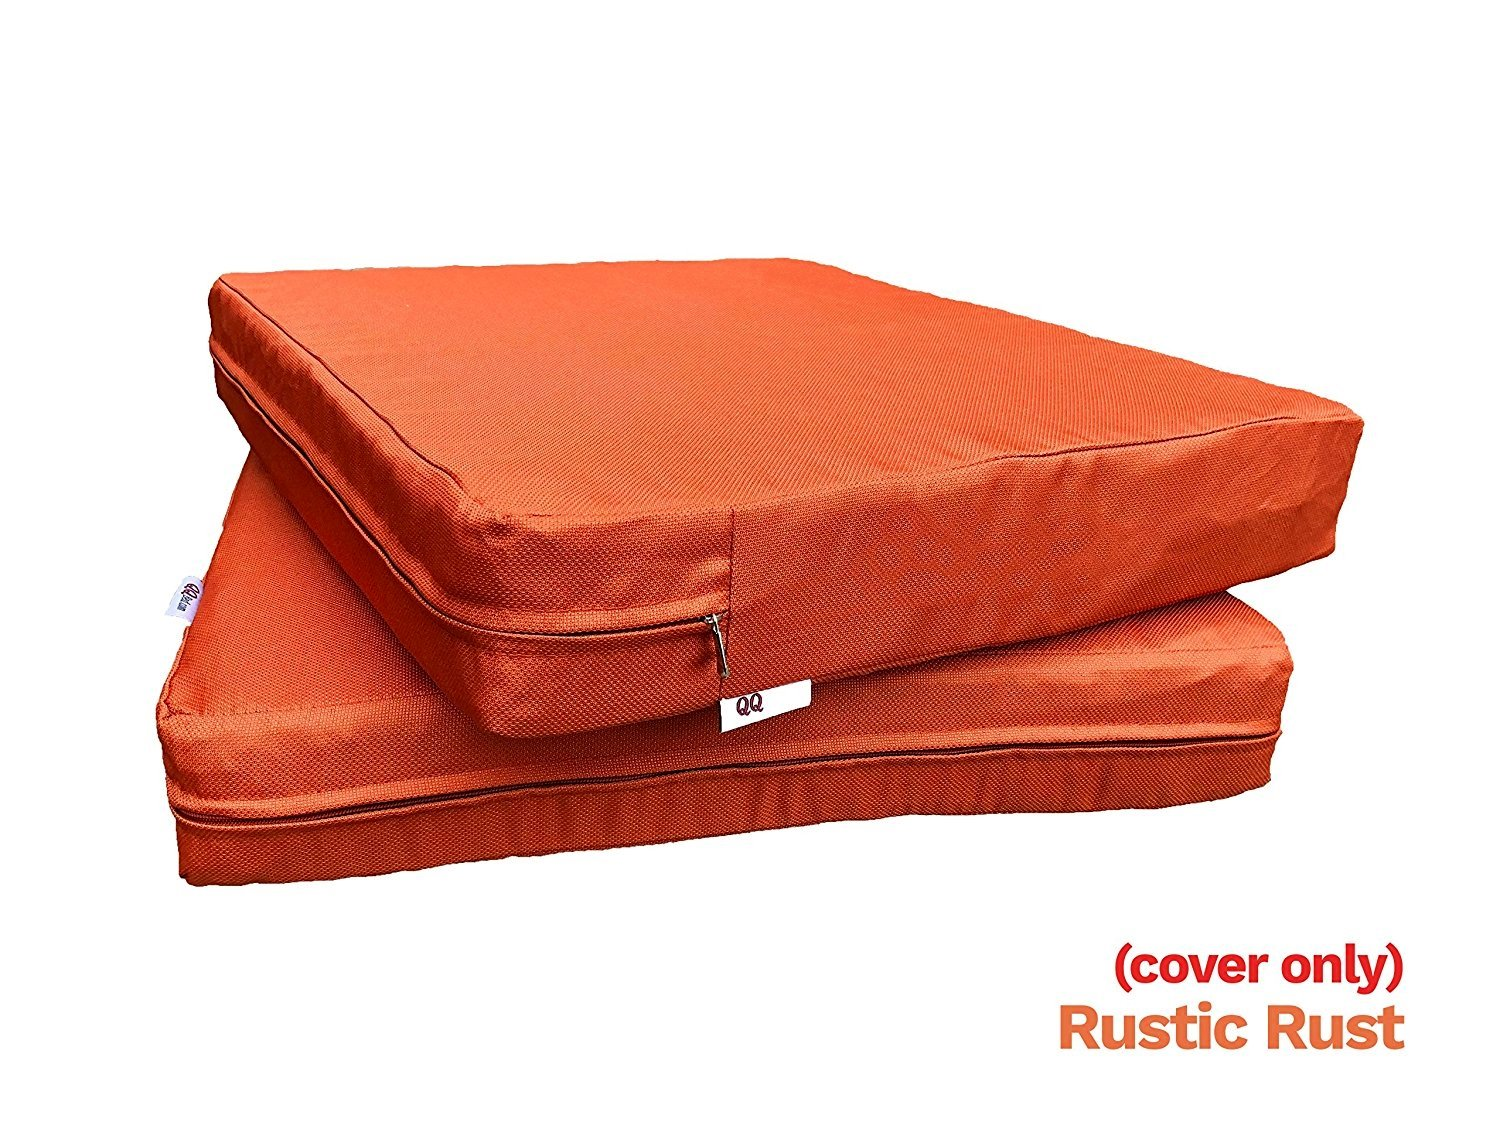 QQbed Outdoor Patio Chair Washable Cushion Pillow Seat Covers 24'' X 22'' - Replacement Covers Only (6Pack 24''X22'', Rustic Rust)